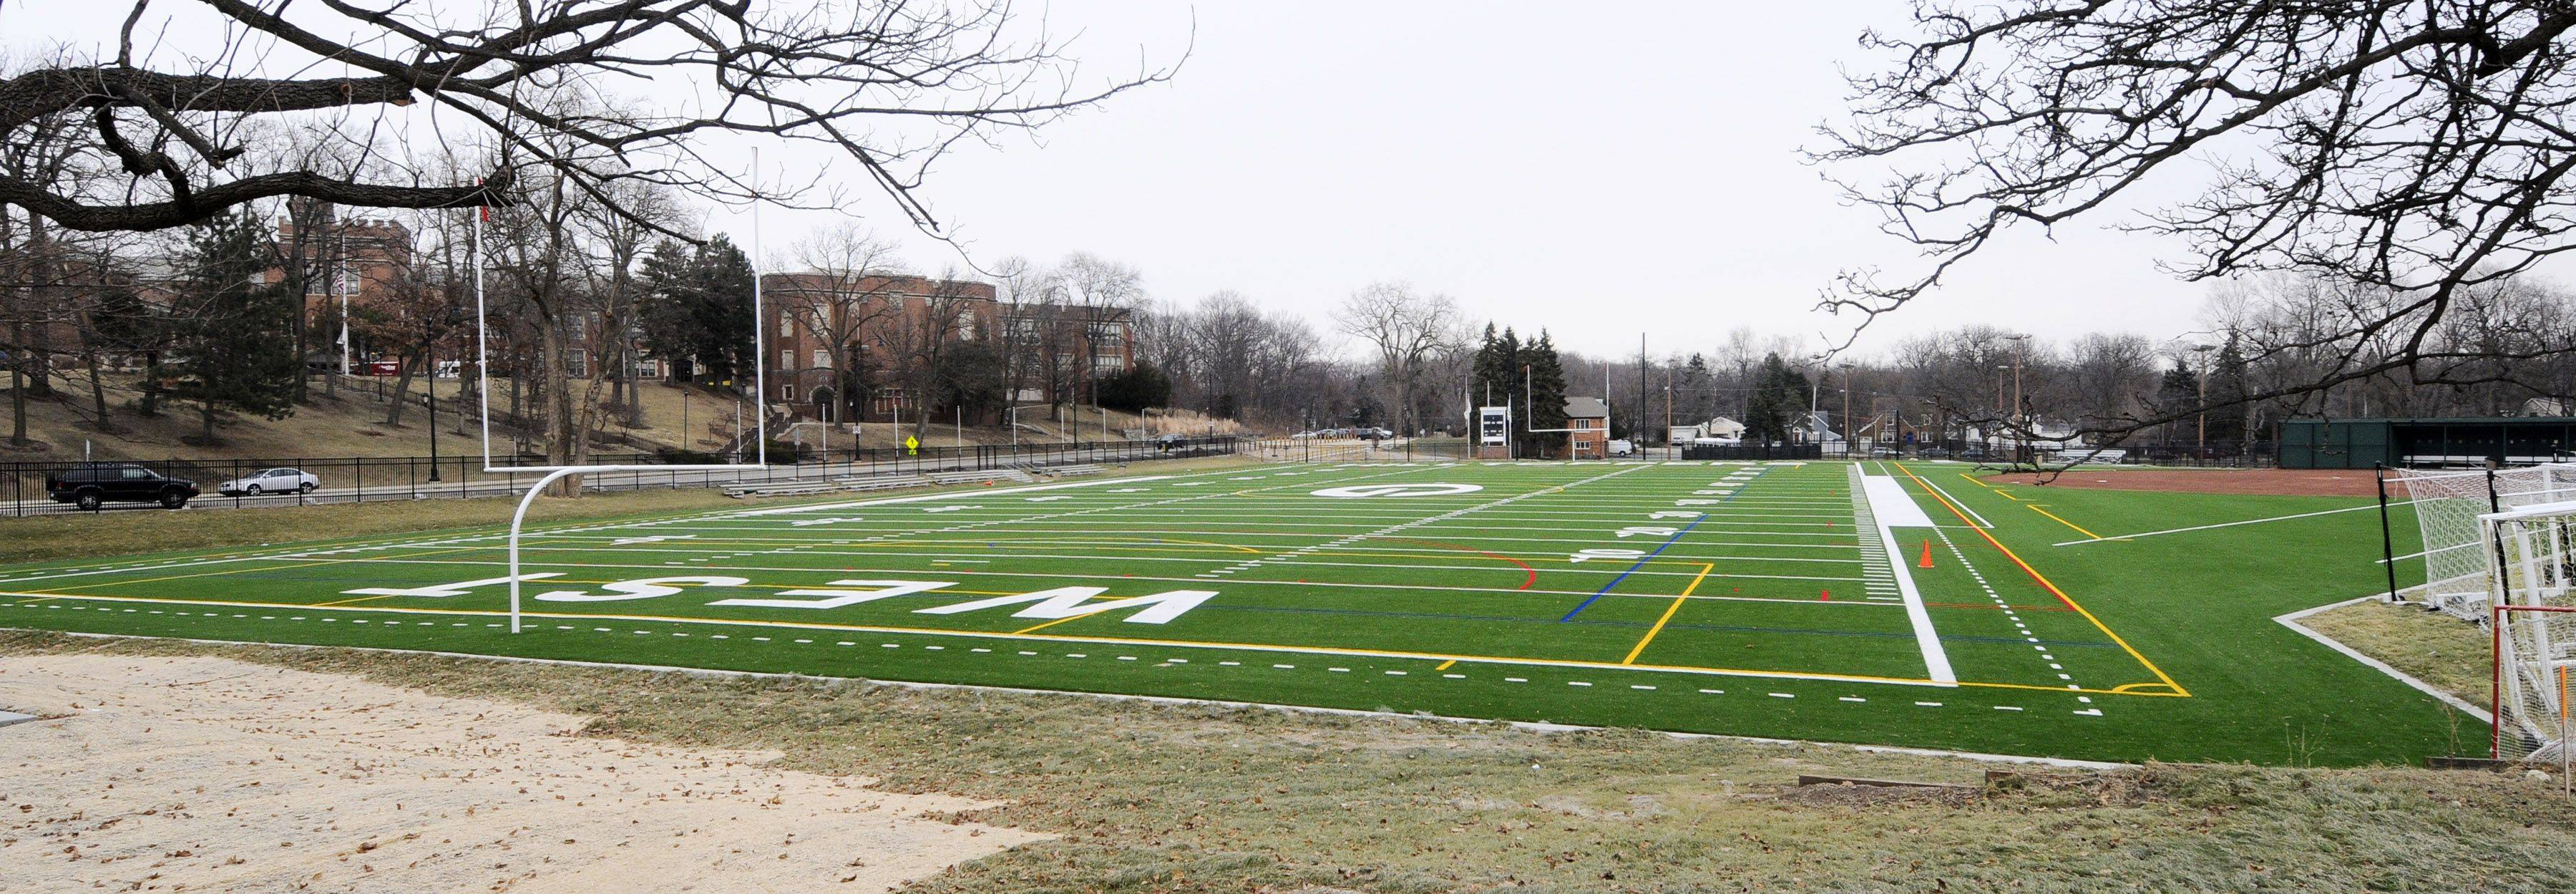 Resident not sold on lights at Glenbard West field